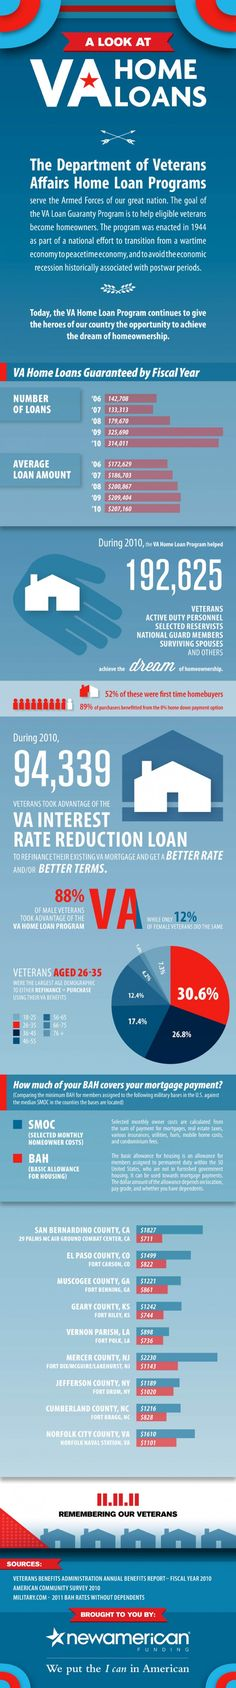 VA Home Loans! great information when buying a home in #Pensacola